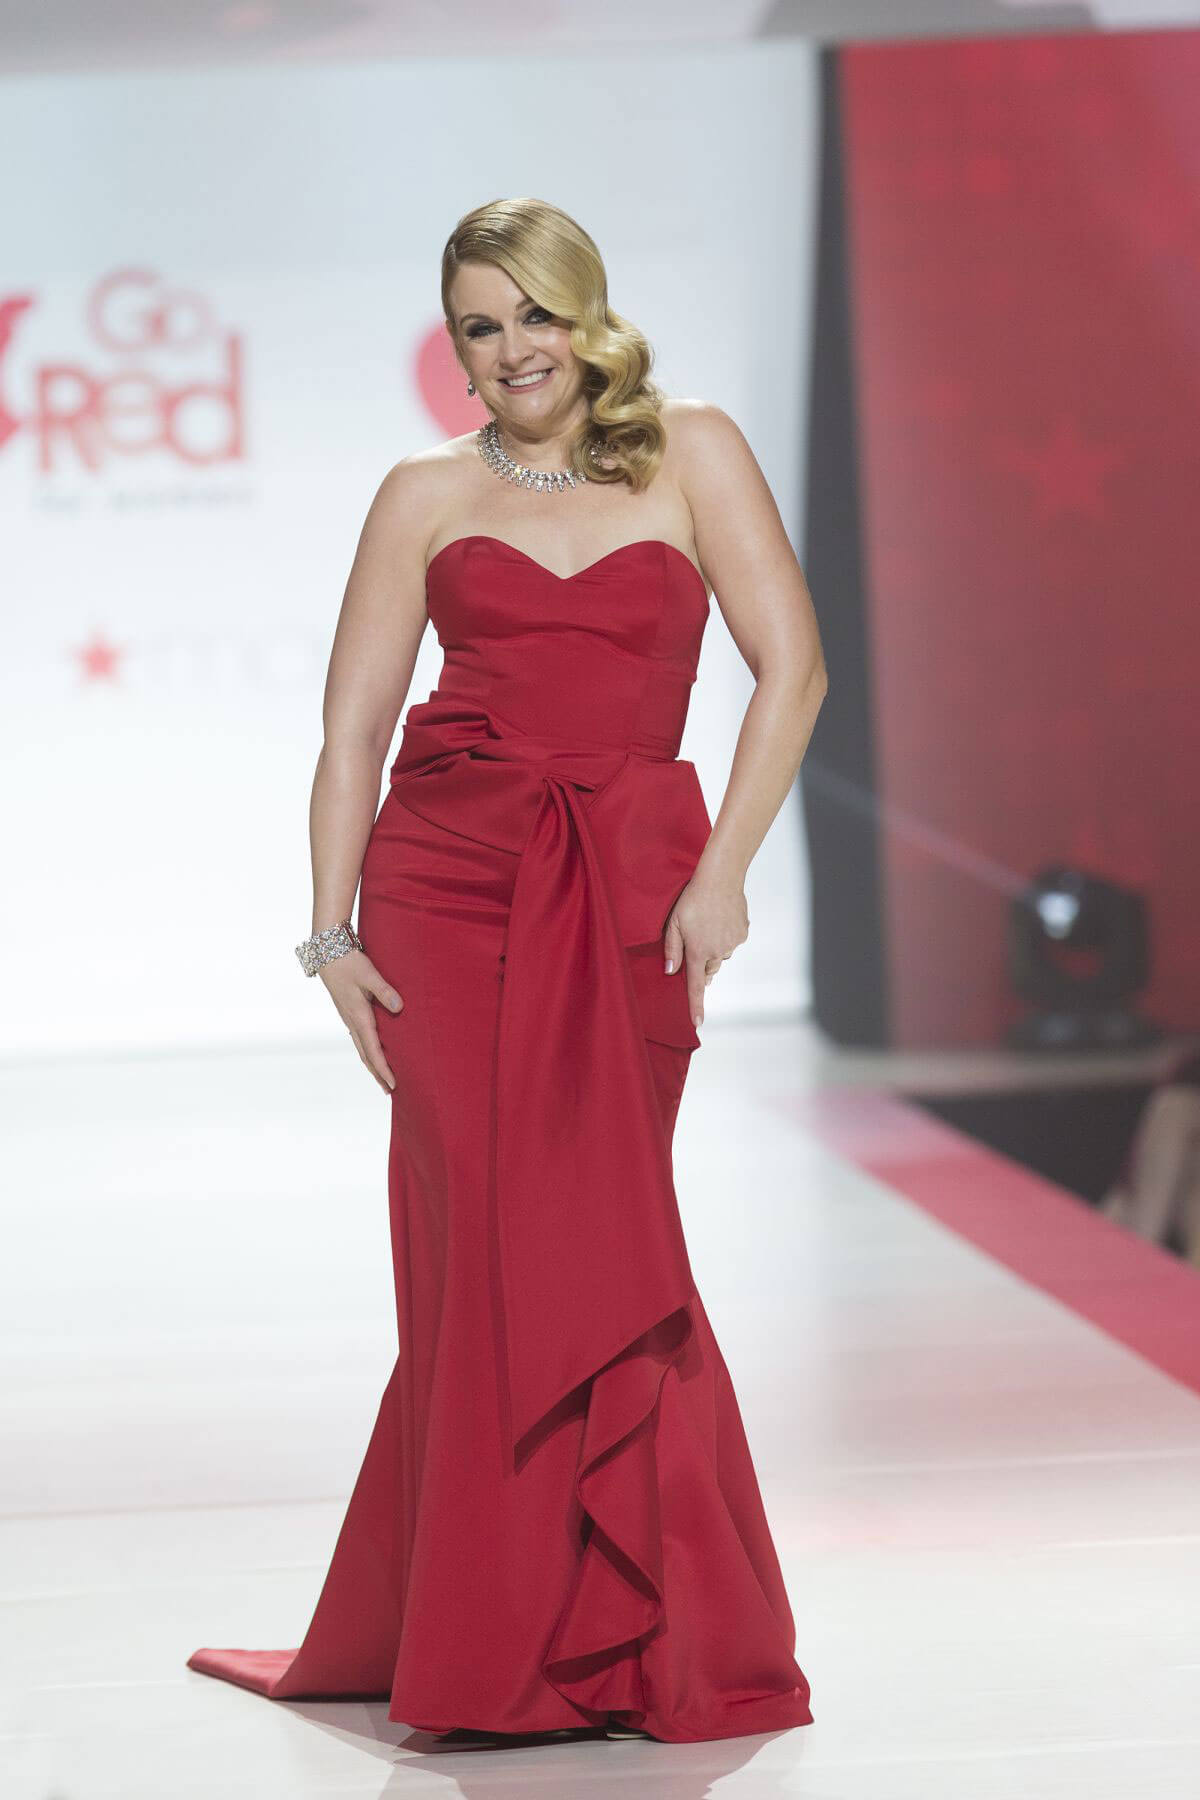 Melissa Joan Hart Stills in Gown by Galia Lahav at Red Dress 2018 Collection Fashion Show in New York 2018/02/08